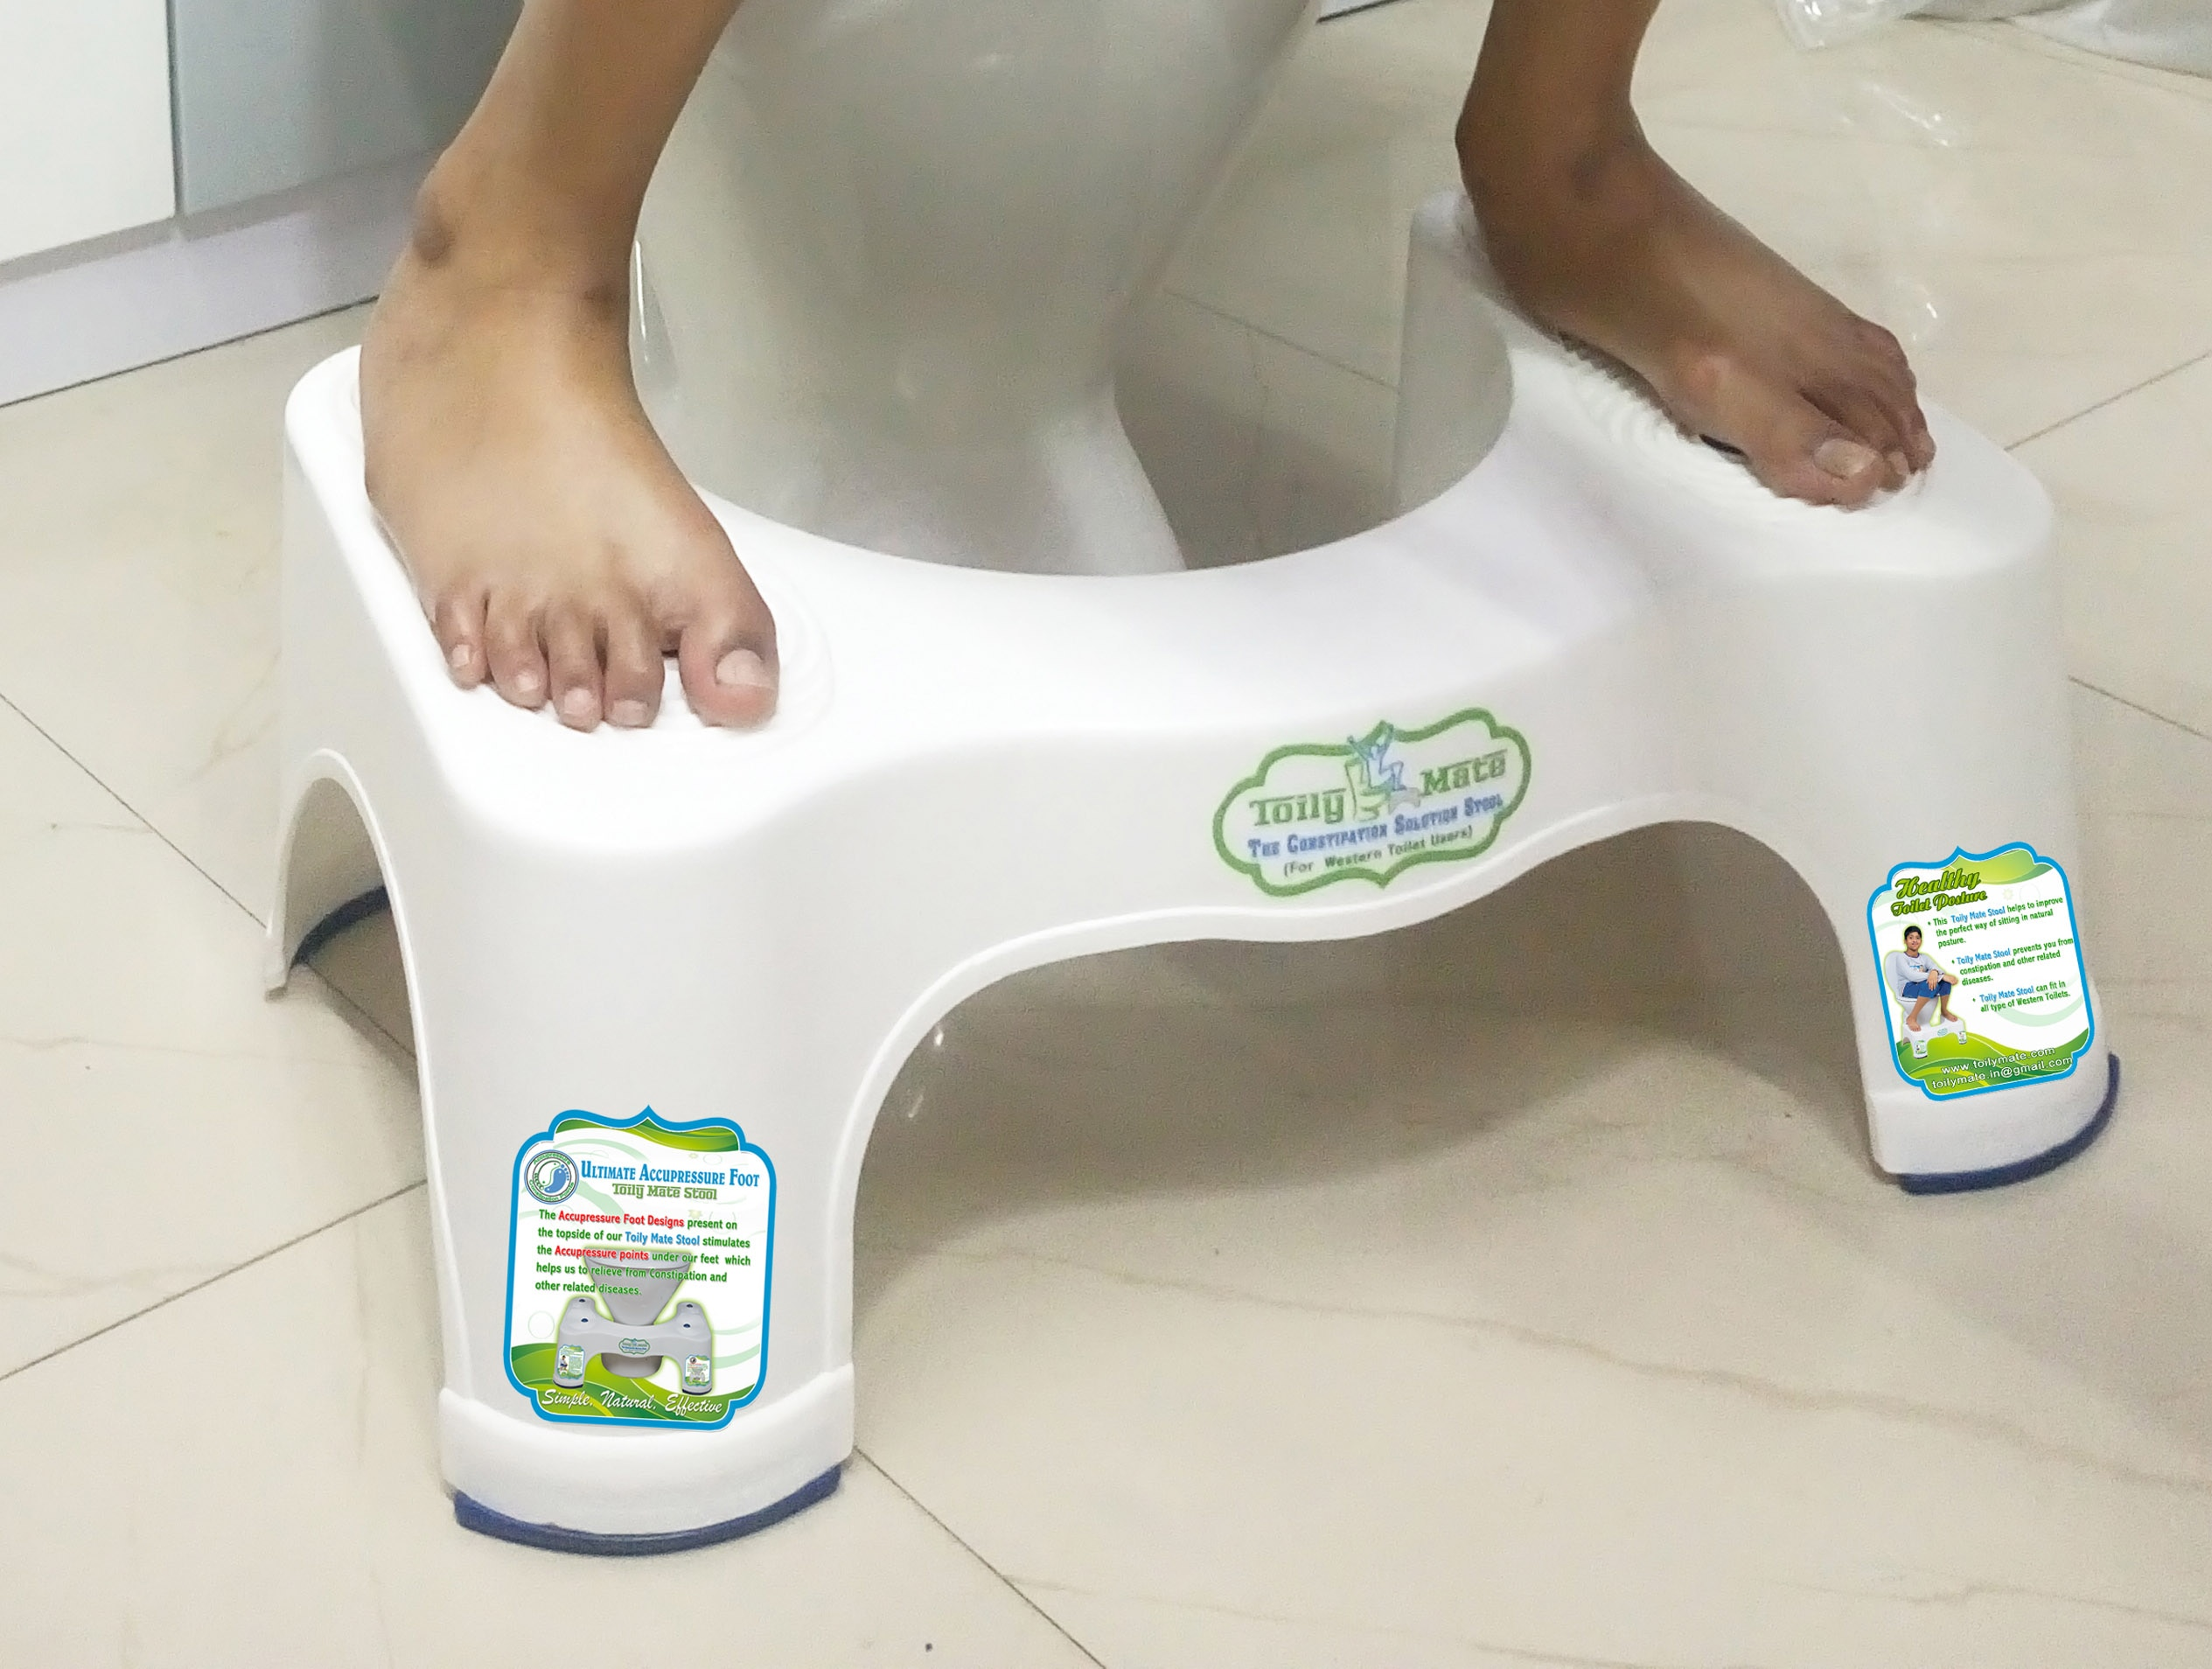 Toilet Stool for Easy Motion  Toily Mate Toilet stool is used to eliminate the waste quickly, easily and completely.It is highly helpful to relieve from Constipation and other related Diseases.  For more details:... http://www.erventure.com/toilet-stool.html  Ph : 9840121517, 9841555111